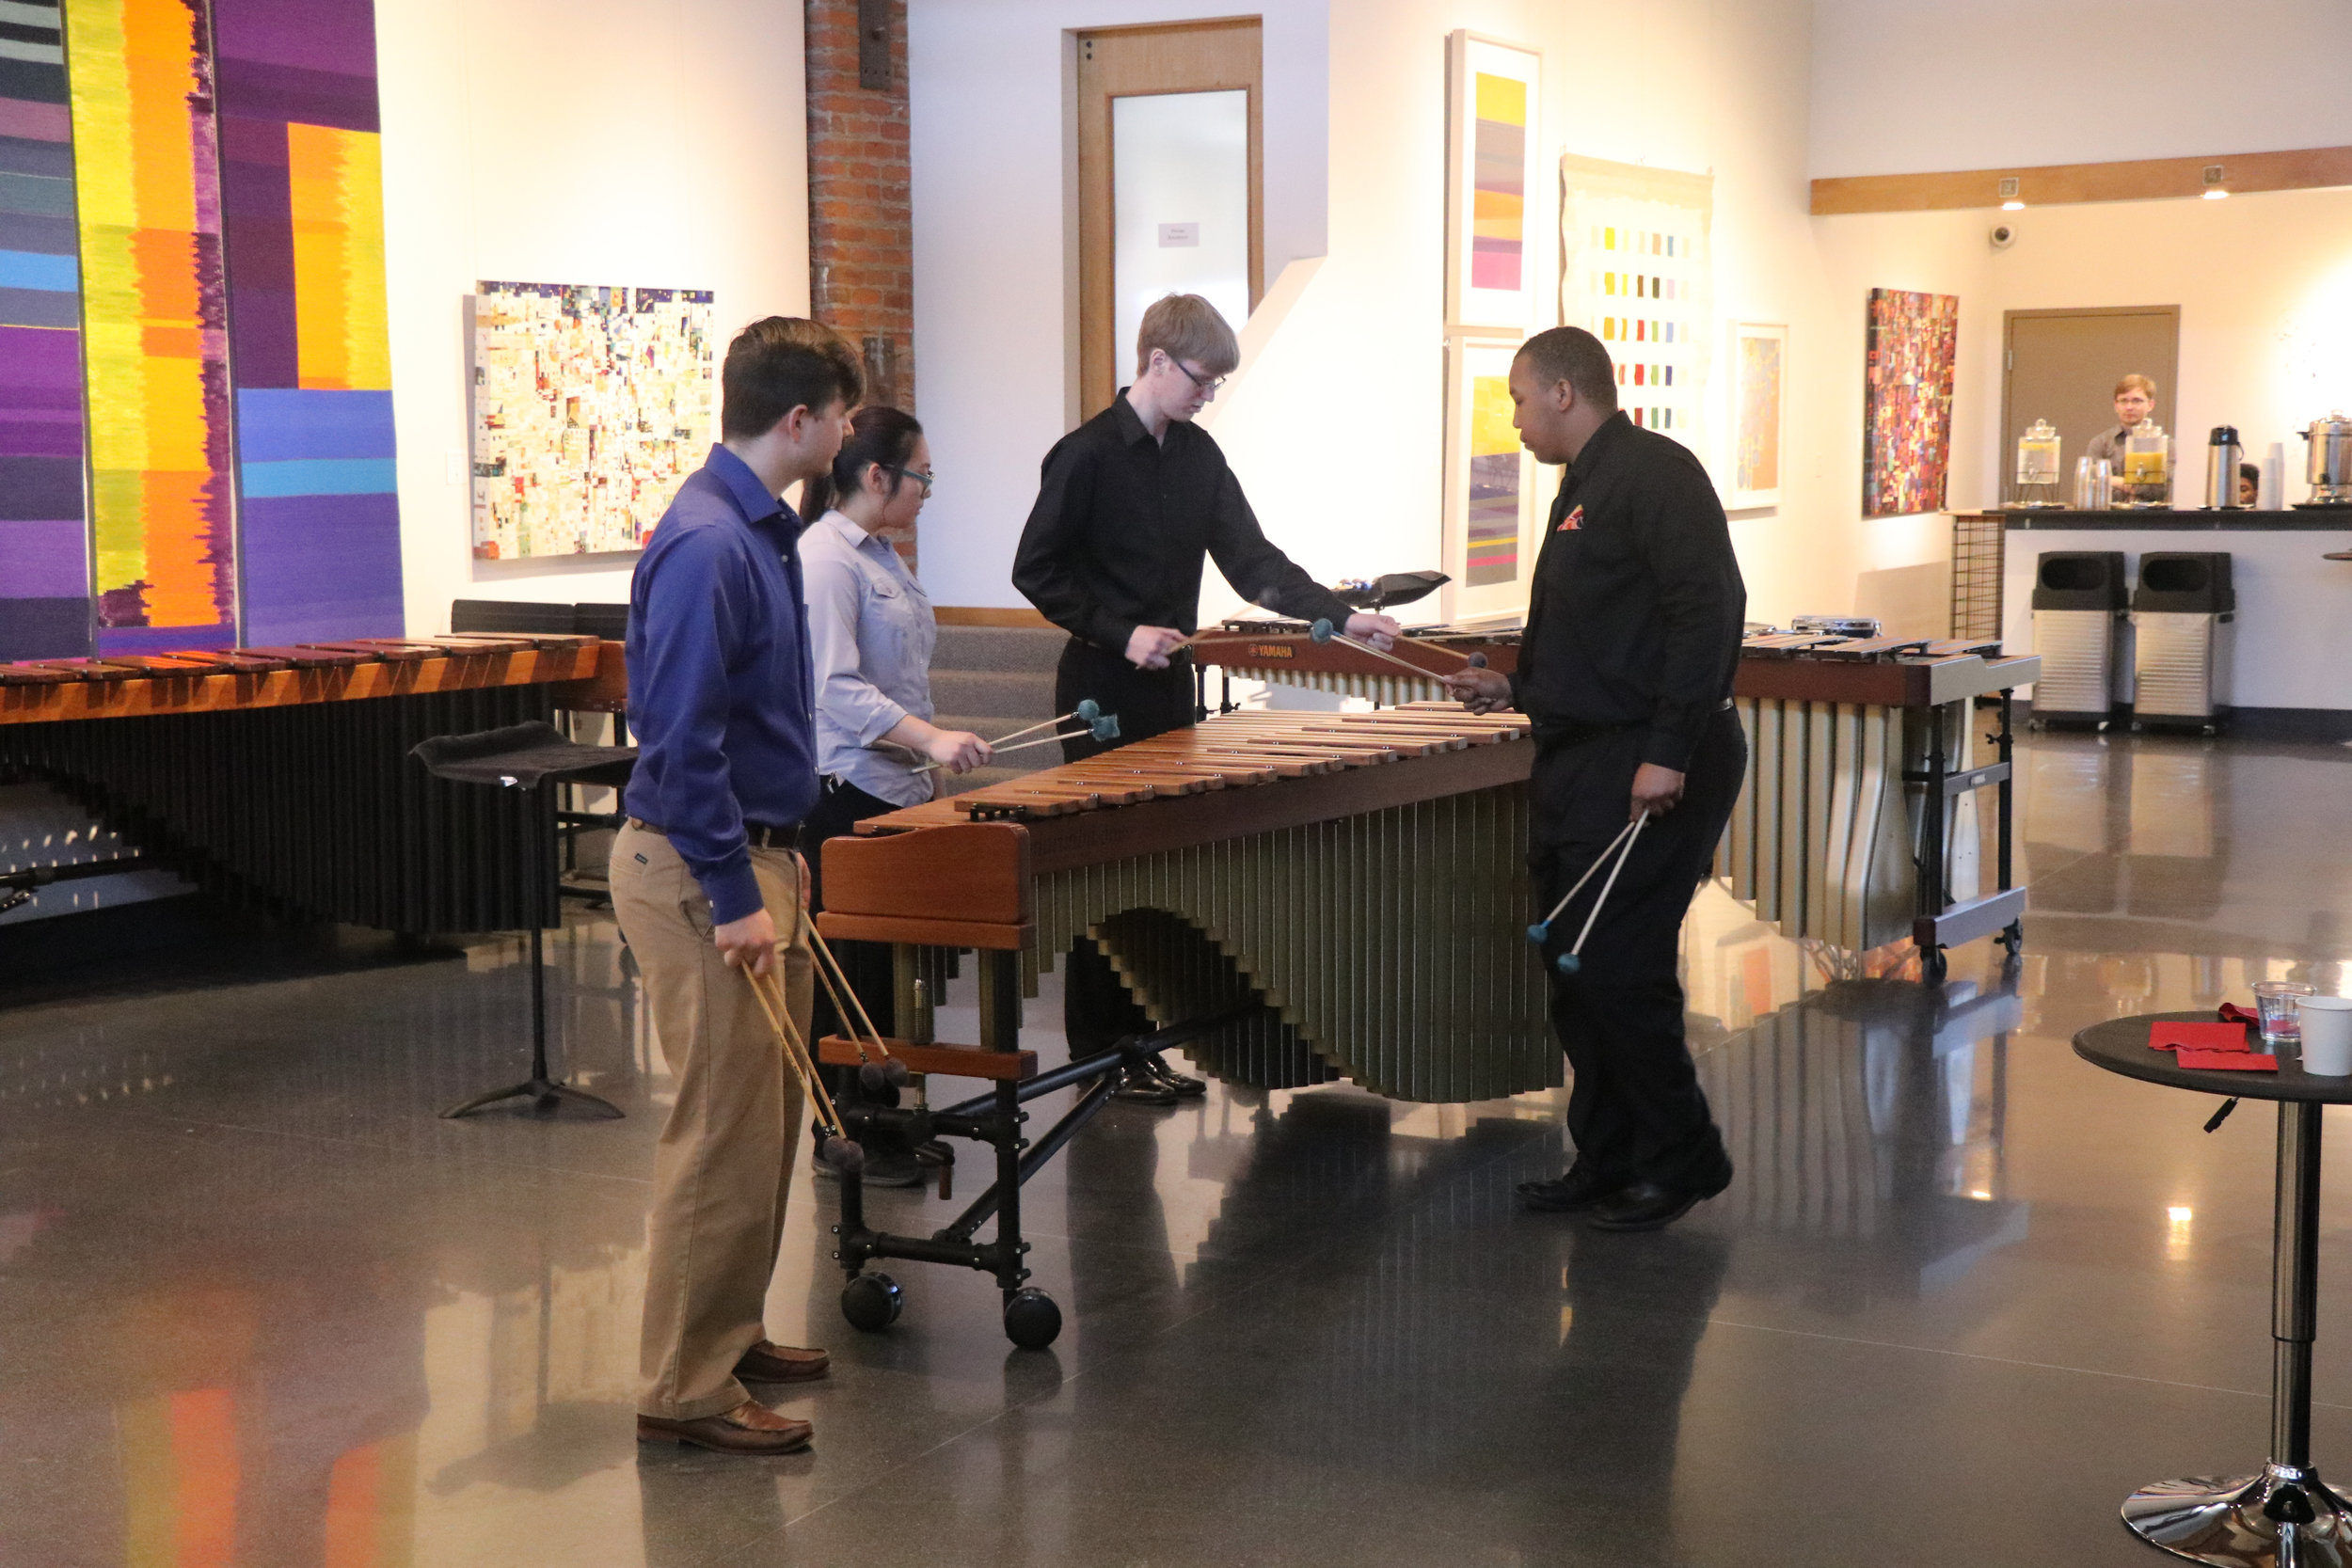 Gallery 1516_UNO Percussion Ensemble 4-14-2019-4959-68_Kaplan.jpg